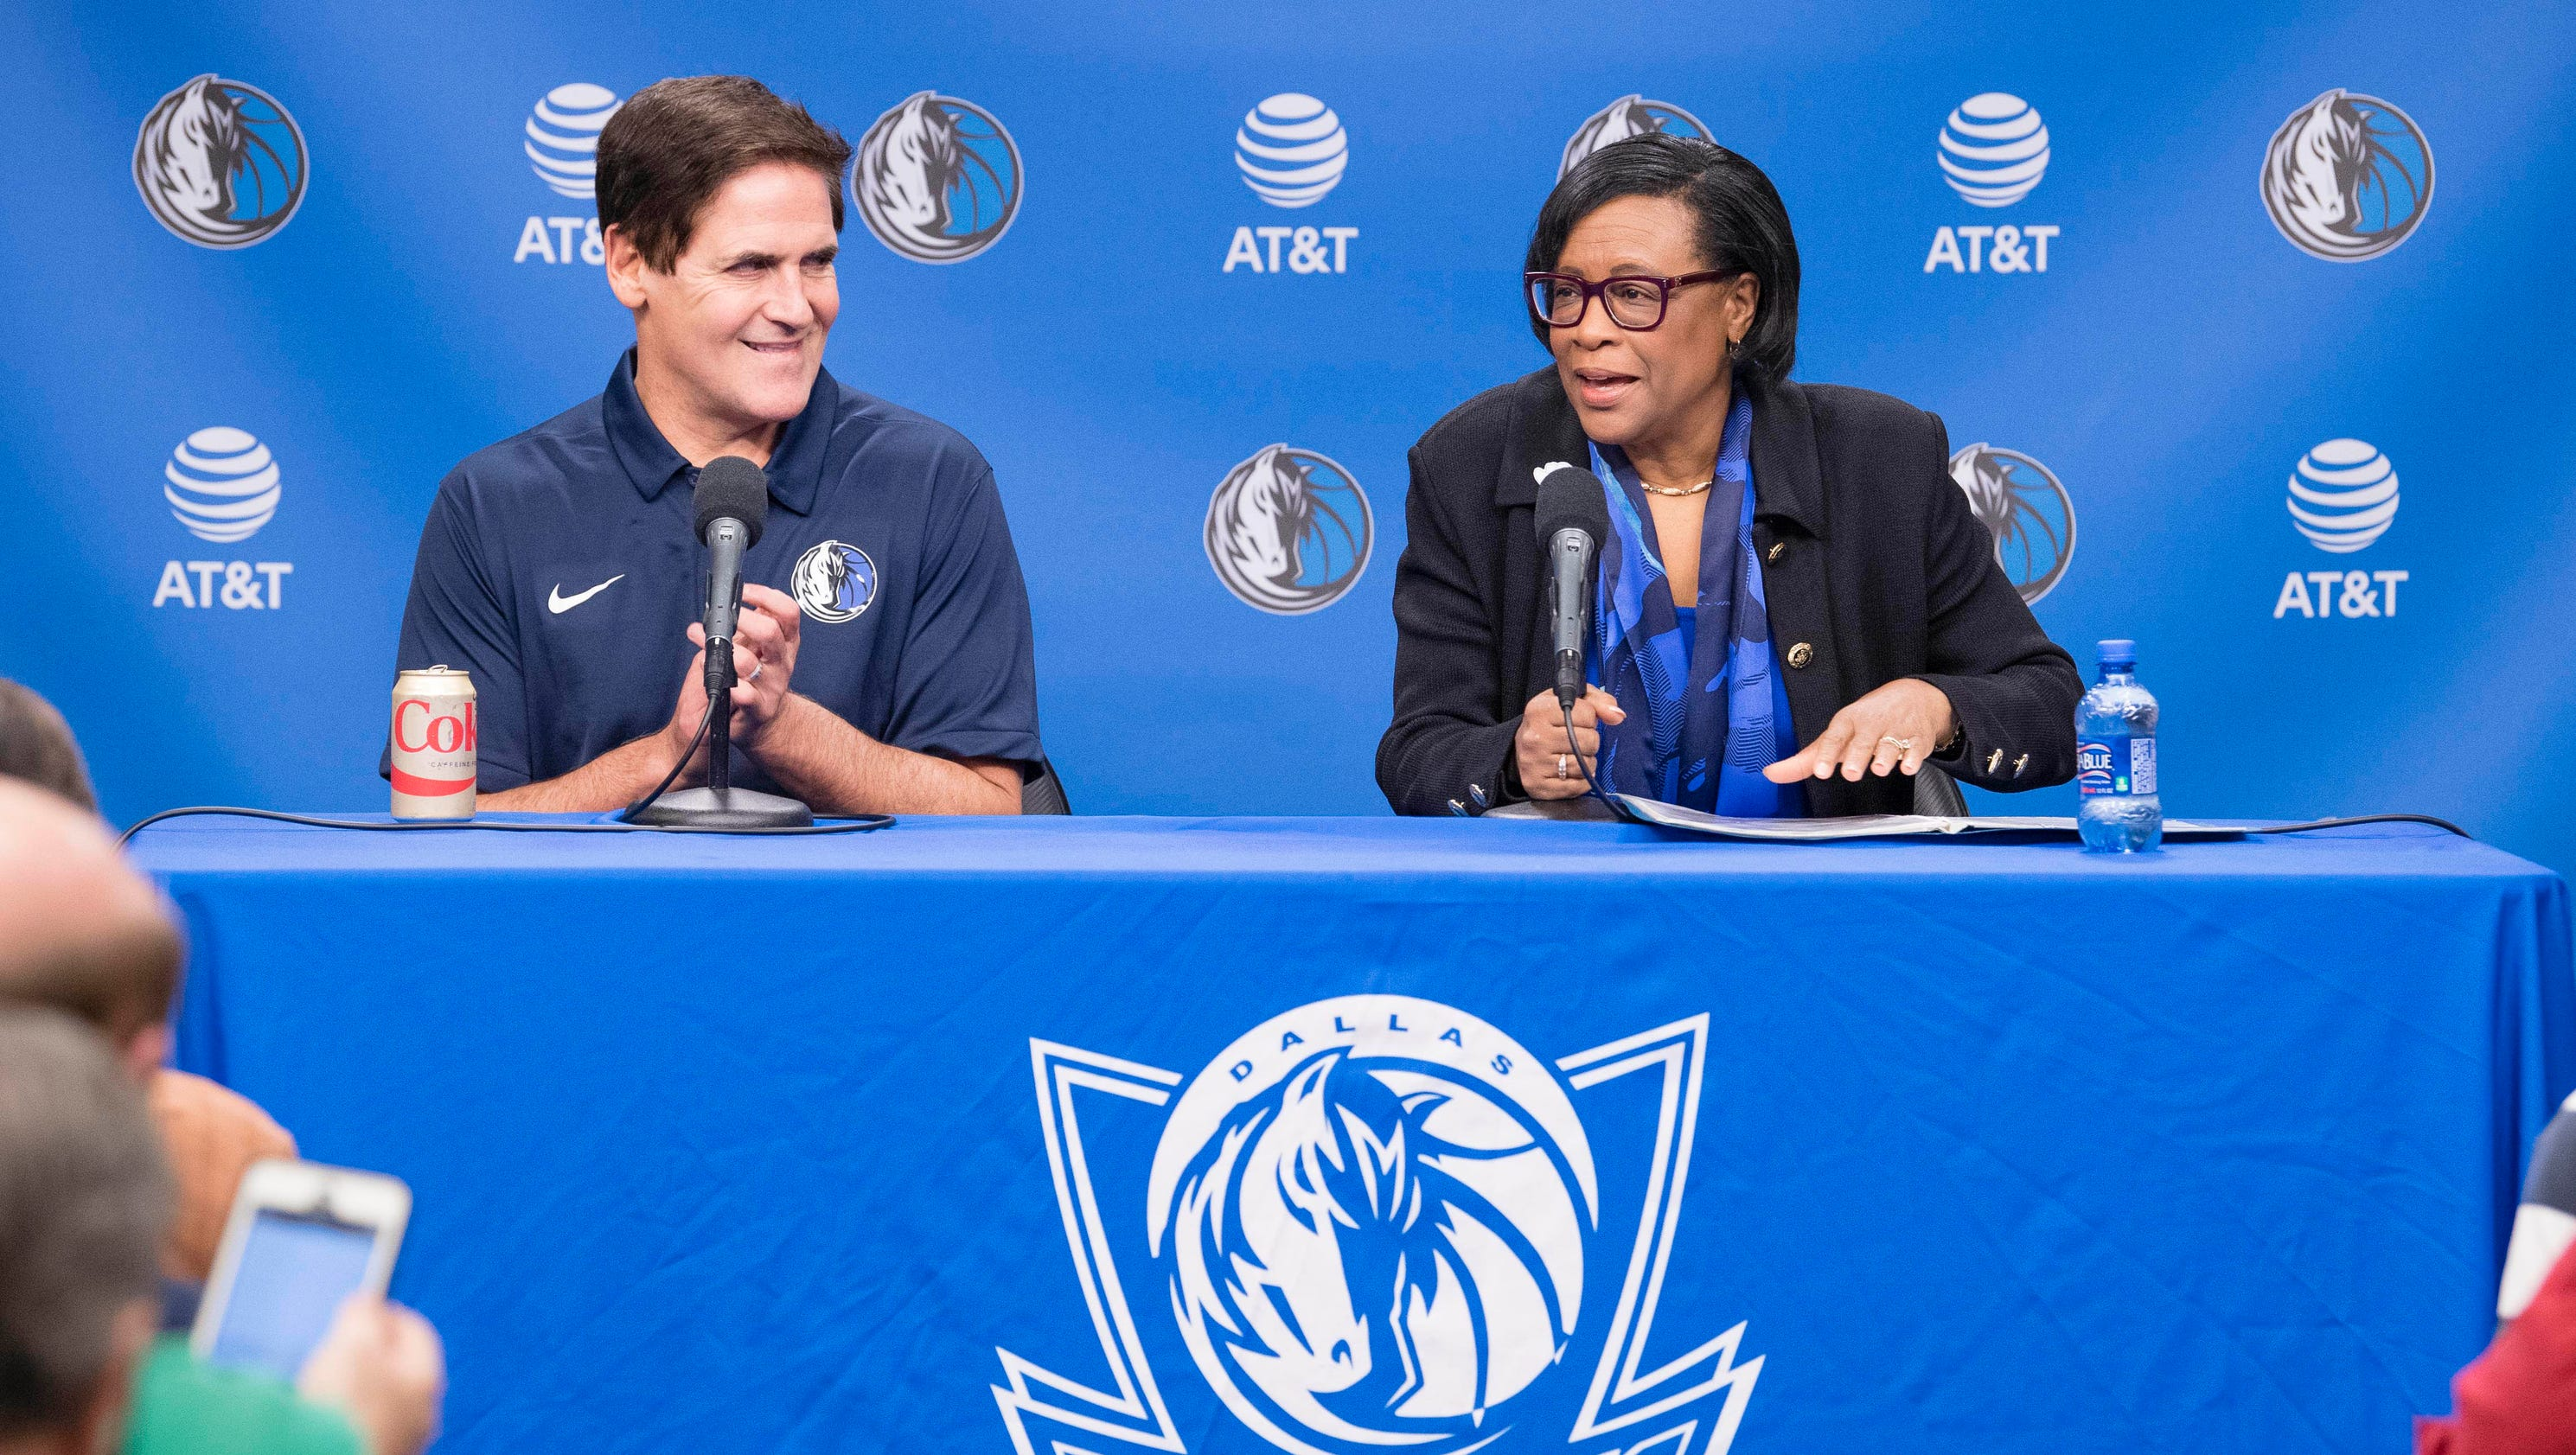 Former Mavericks employee: Mark Cuban 'doesn't recognize culture he helped create'